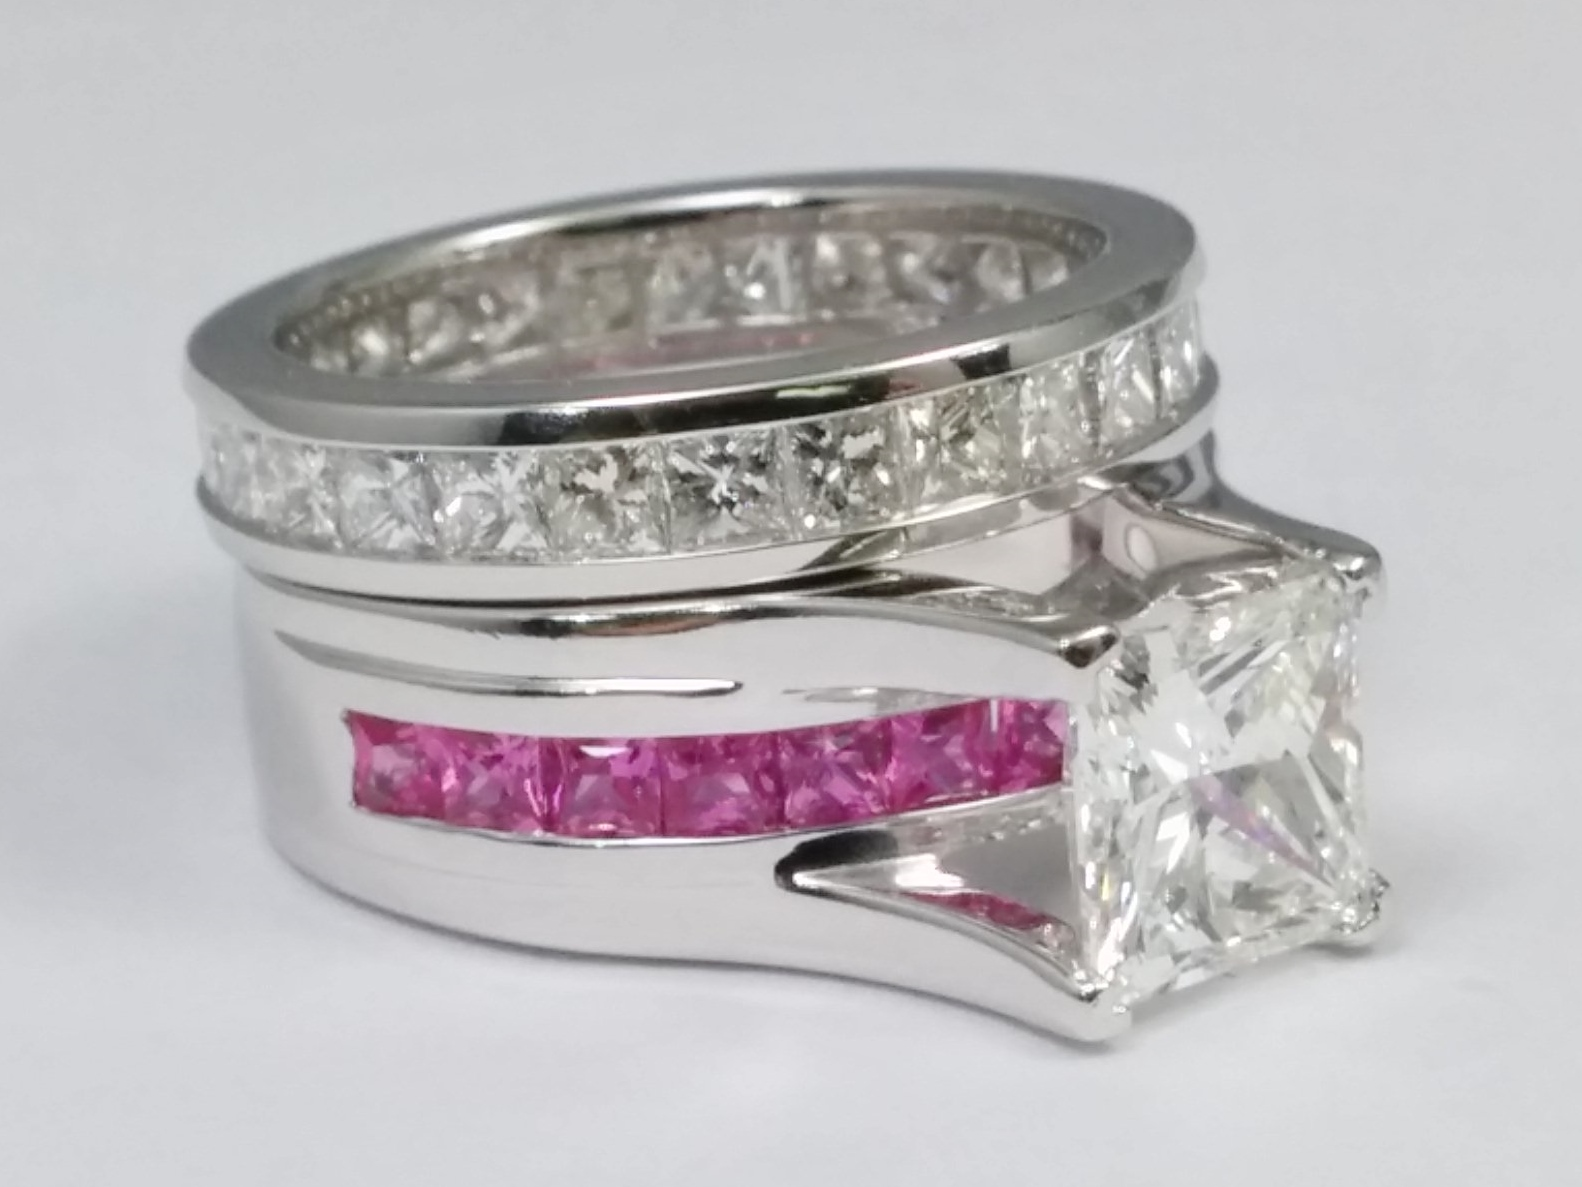 rings wg anniversary in with stone wedding dark white diamond prong shared sapphire platinum round nl pink jewelry band gold set